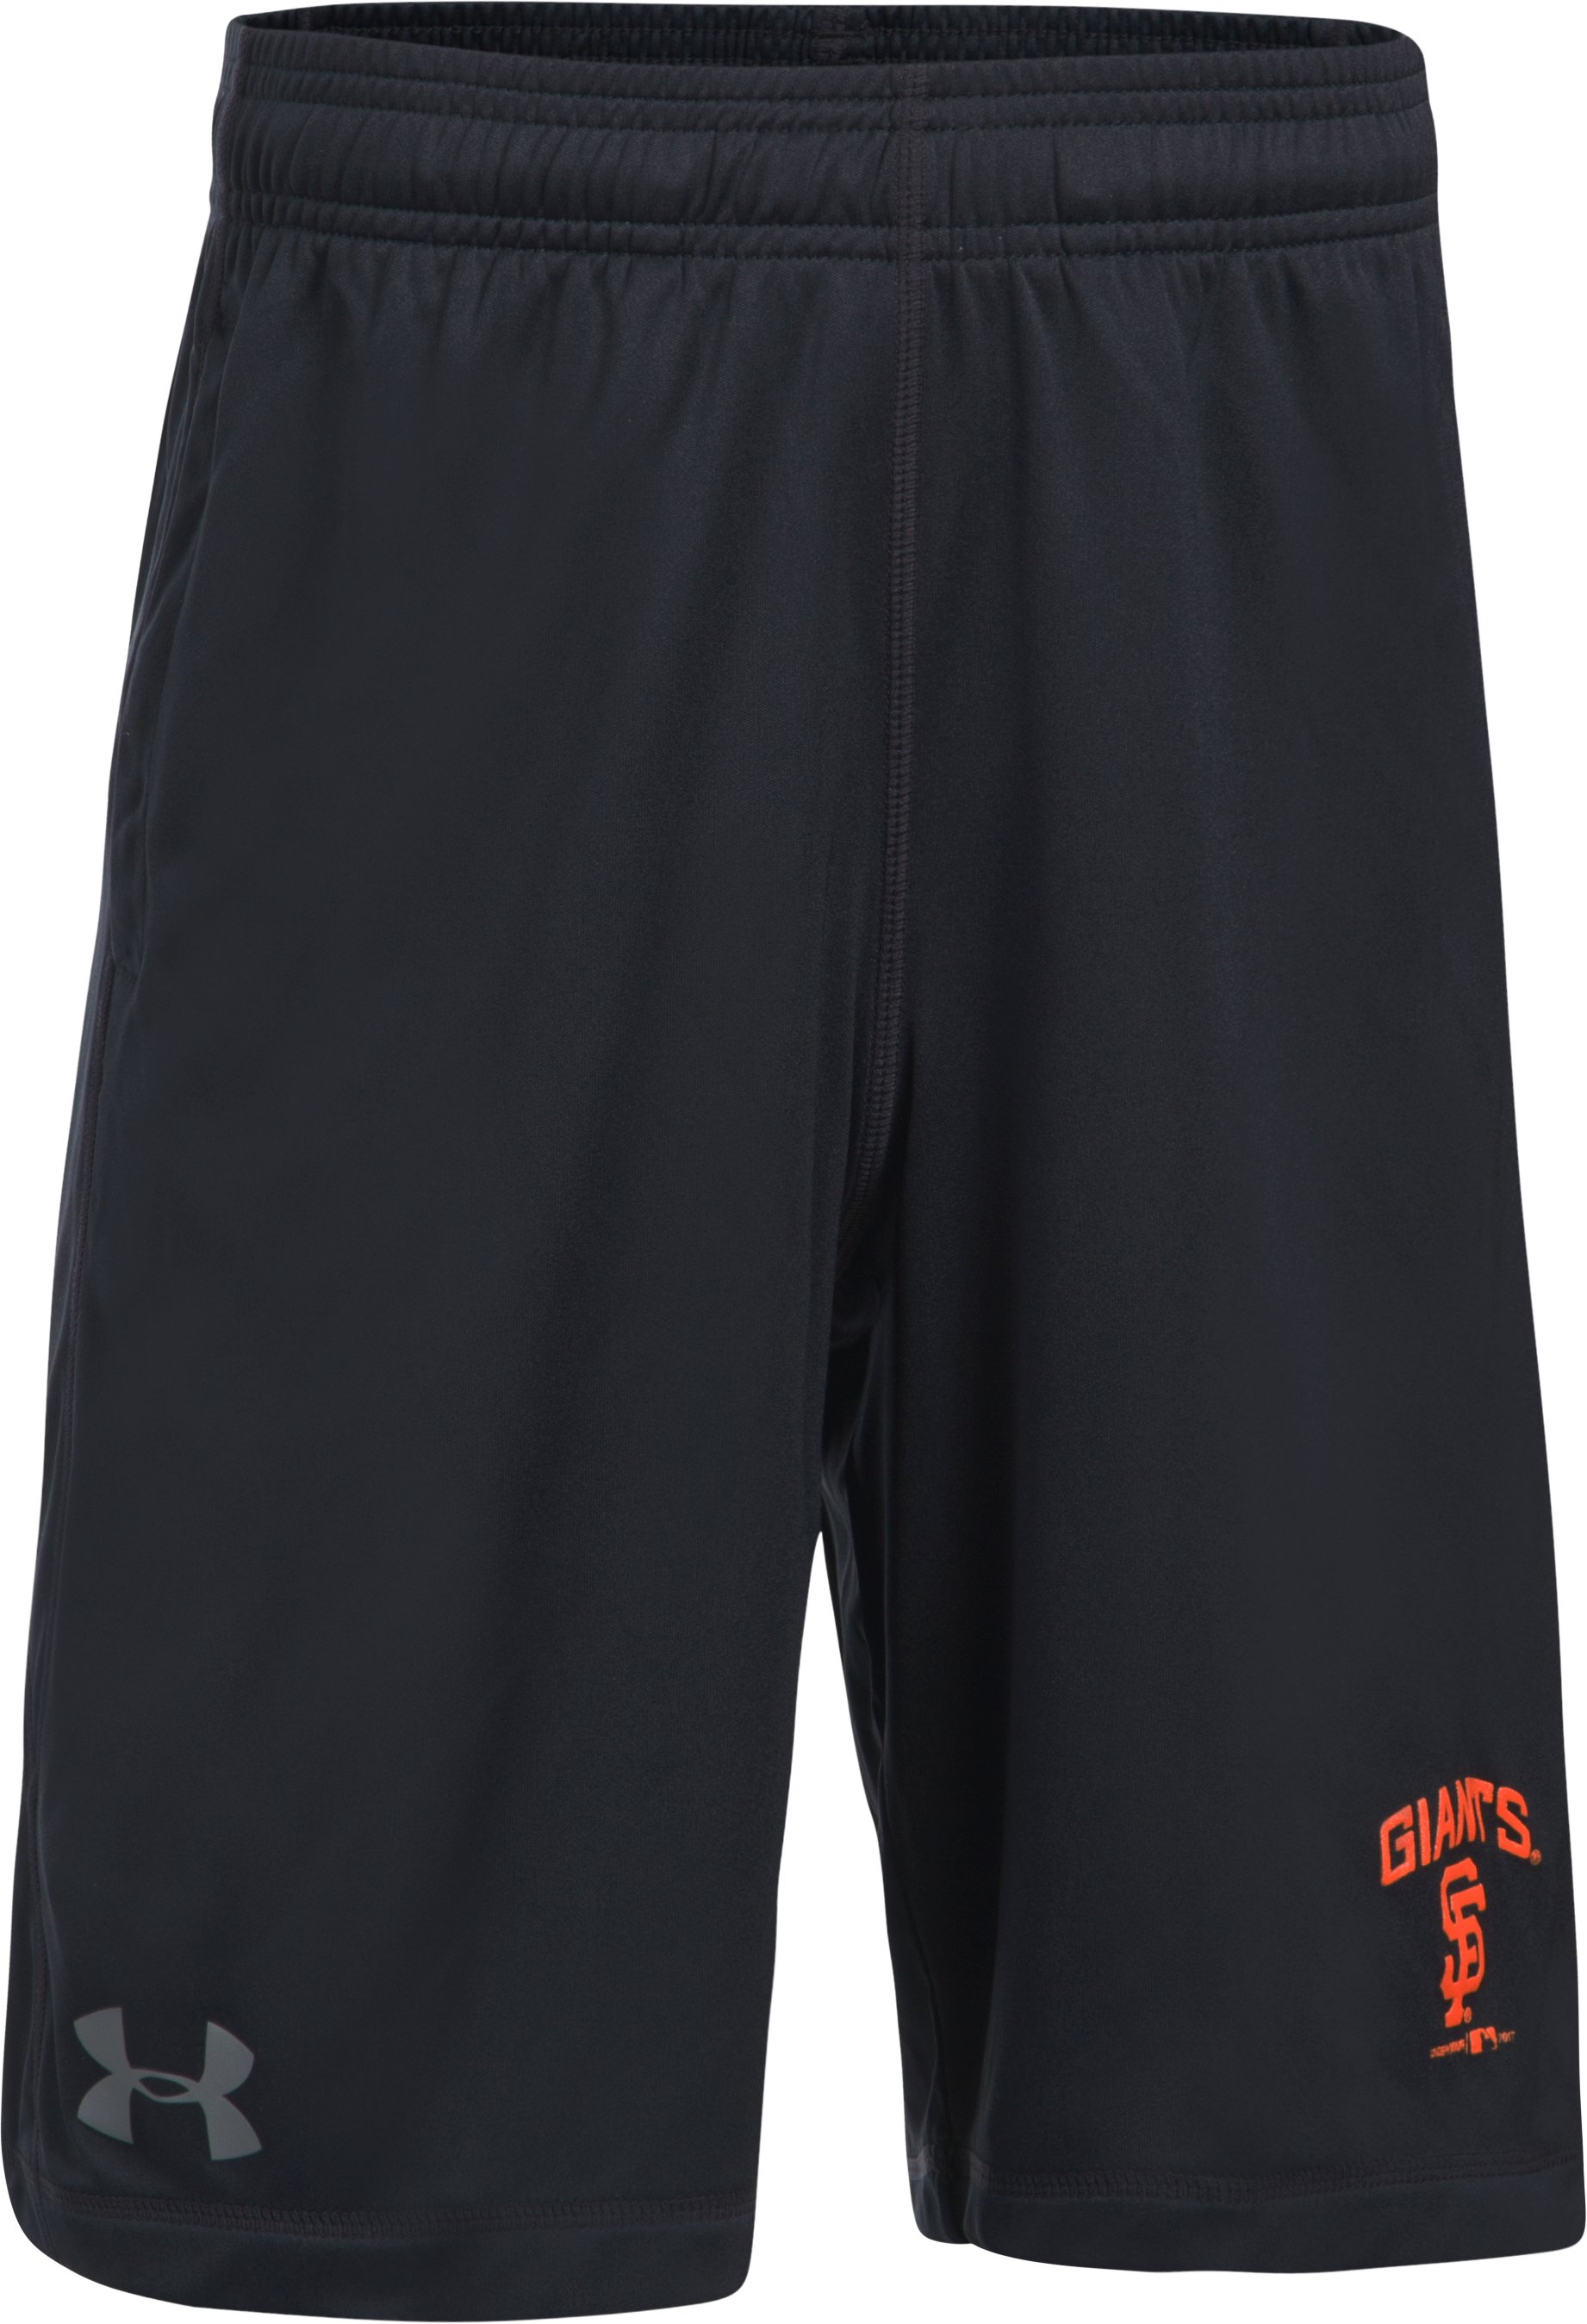 Boys' San Francisco Giants Training Shorts, Black , undefined